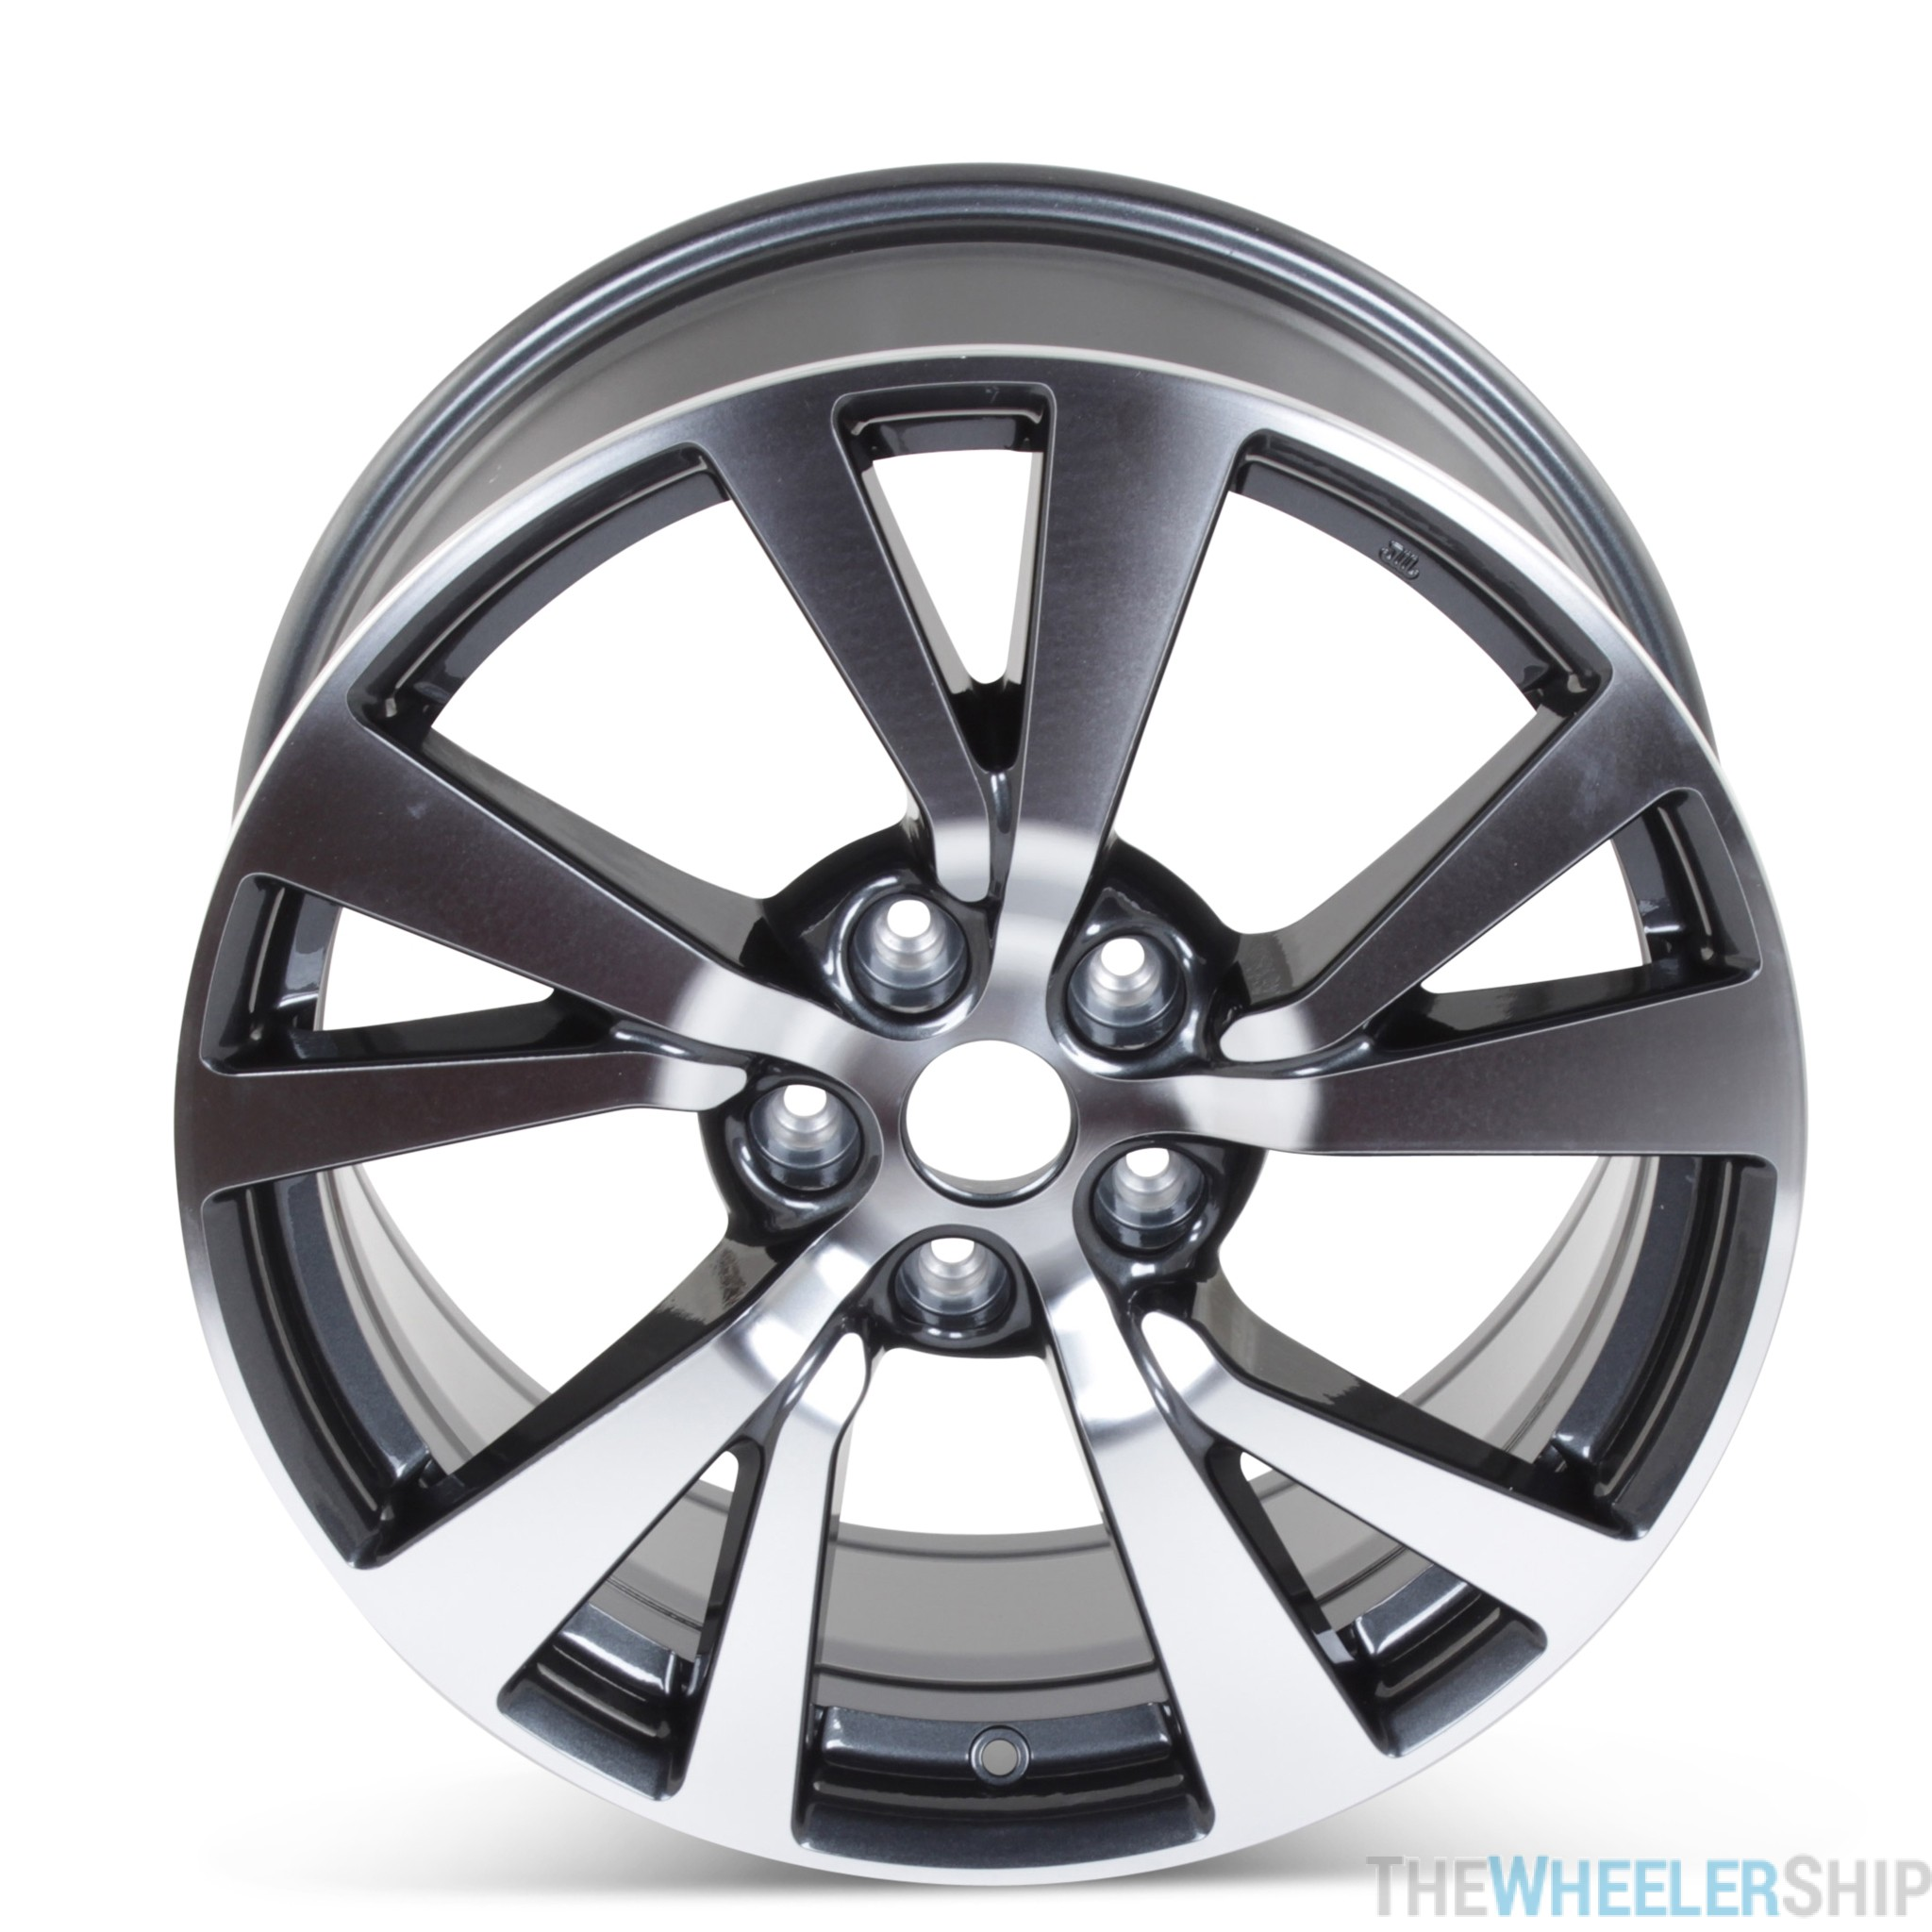 New 18 Alloy Replacement Wheel For Nissan Maxima 2016 2017 2018 Machined W Charcoal Rim 62721